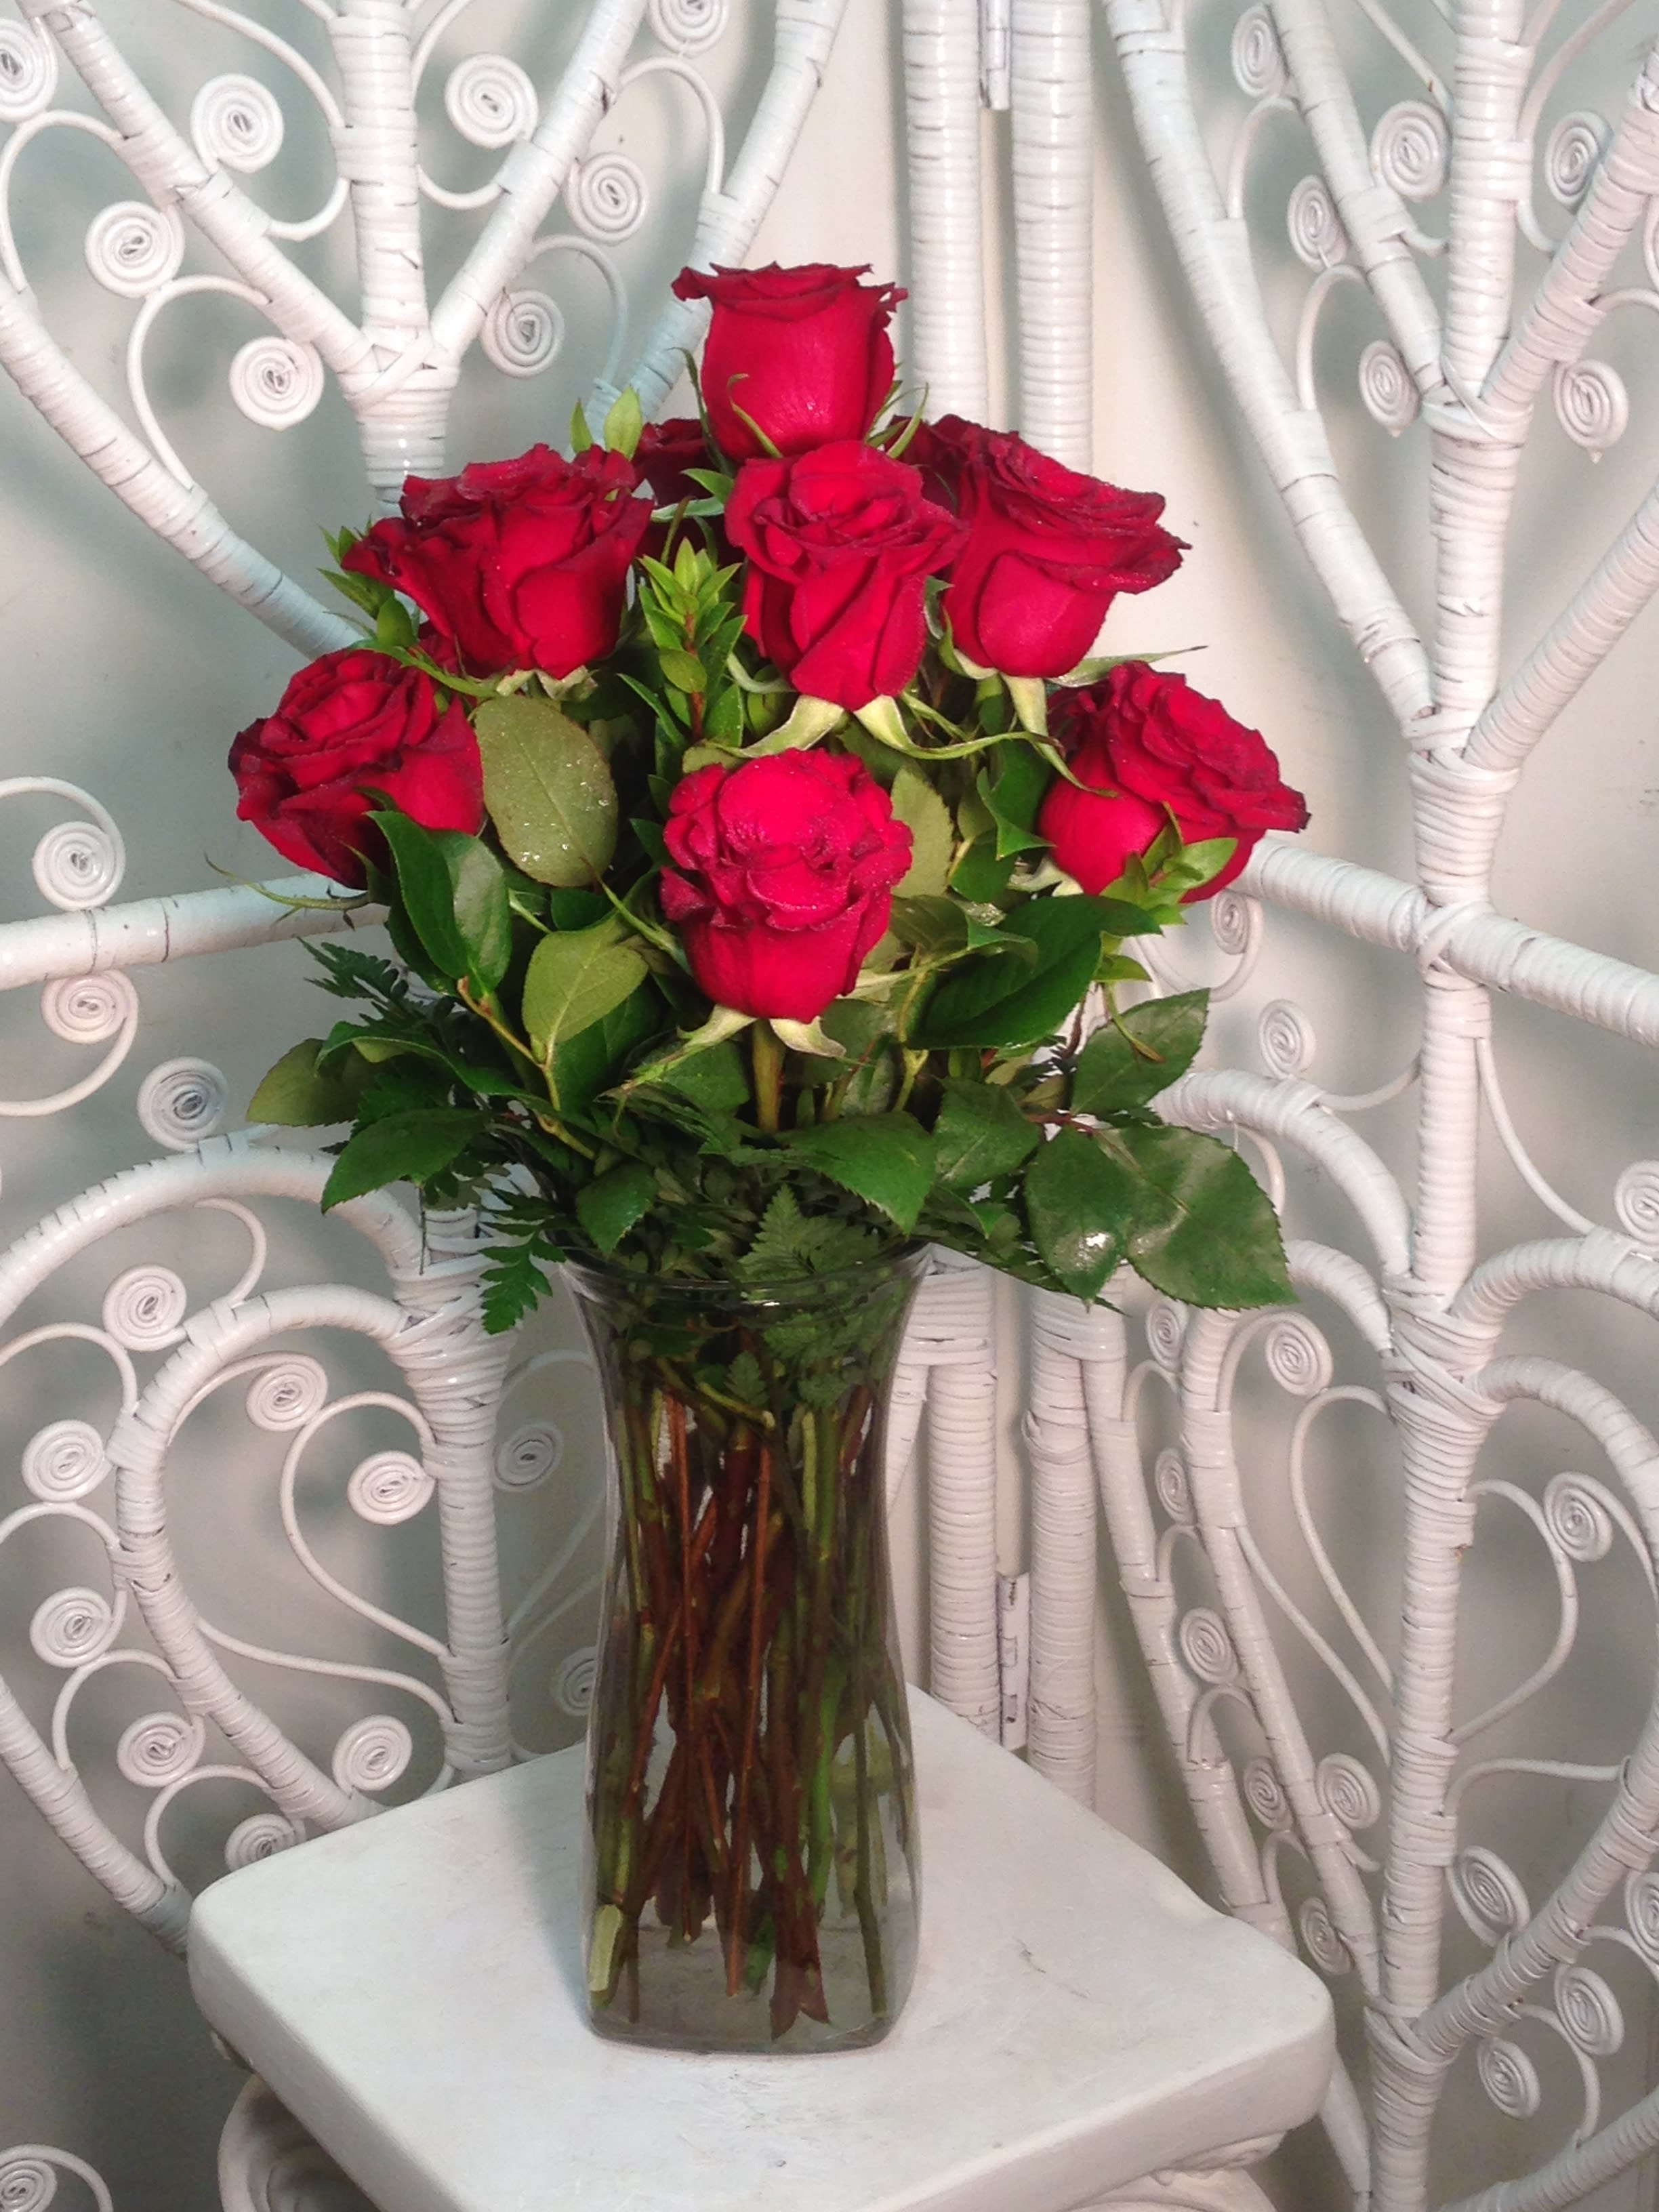 Deeply In Love Red Roses In Arlington Heights Il Arlington Heights Florist